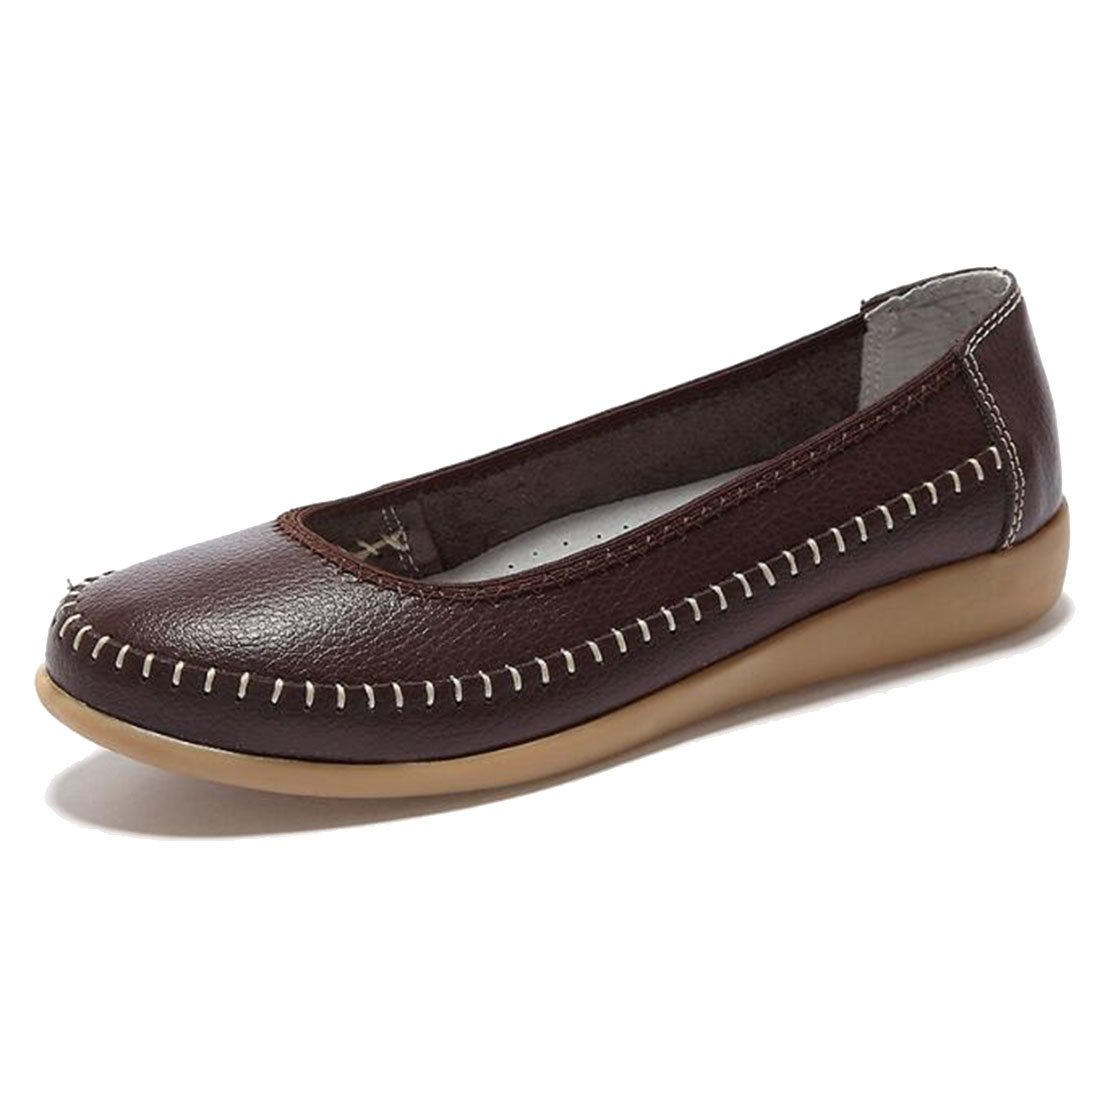 COVOYYAR Womens Solid Shallow Top Round Toe Elegant Driving Flats Slip On Shoes